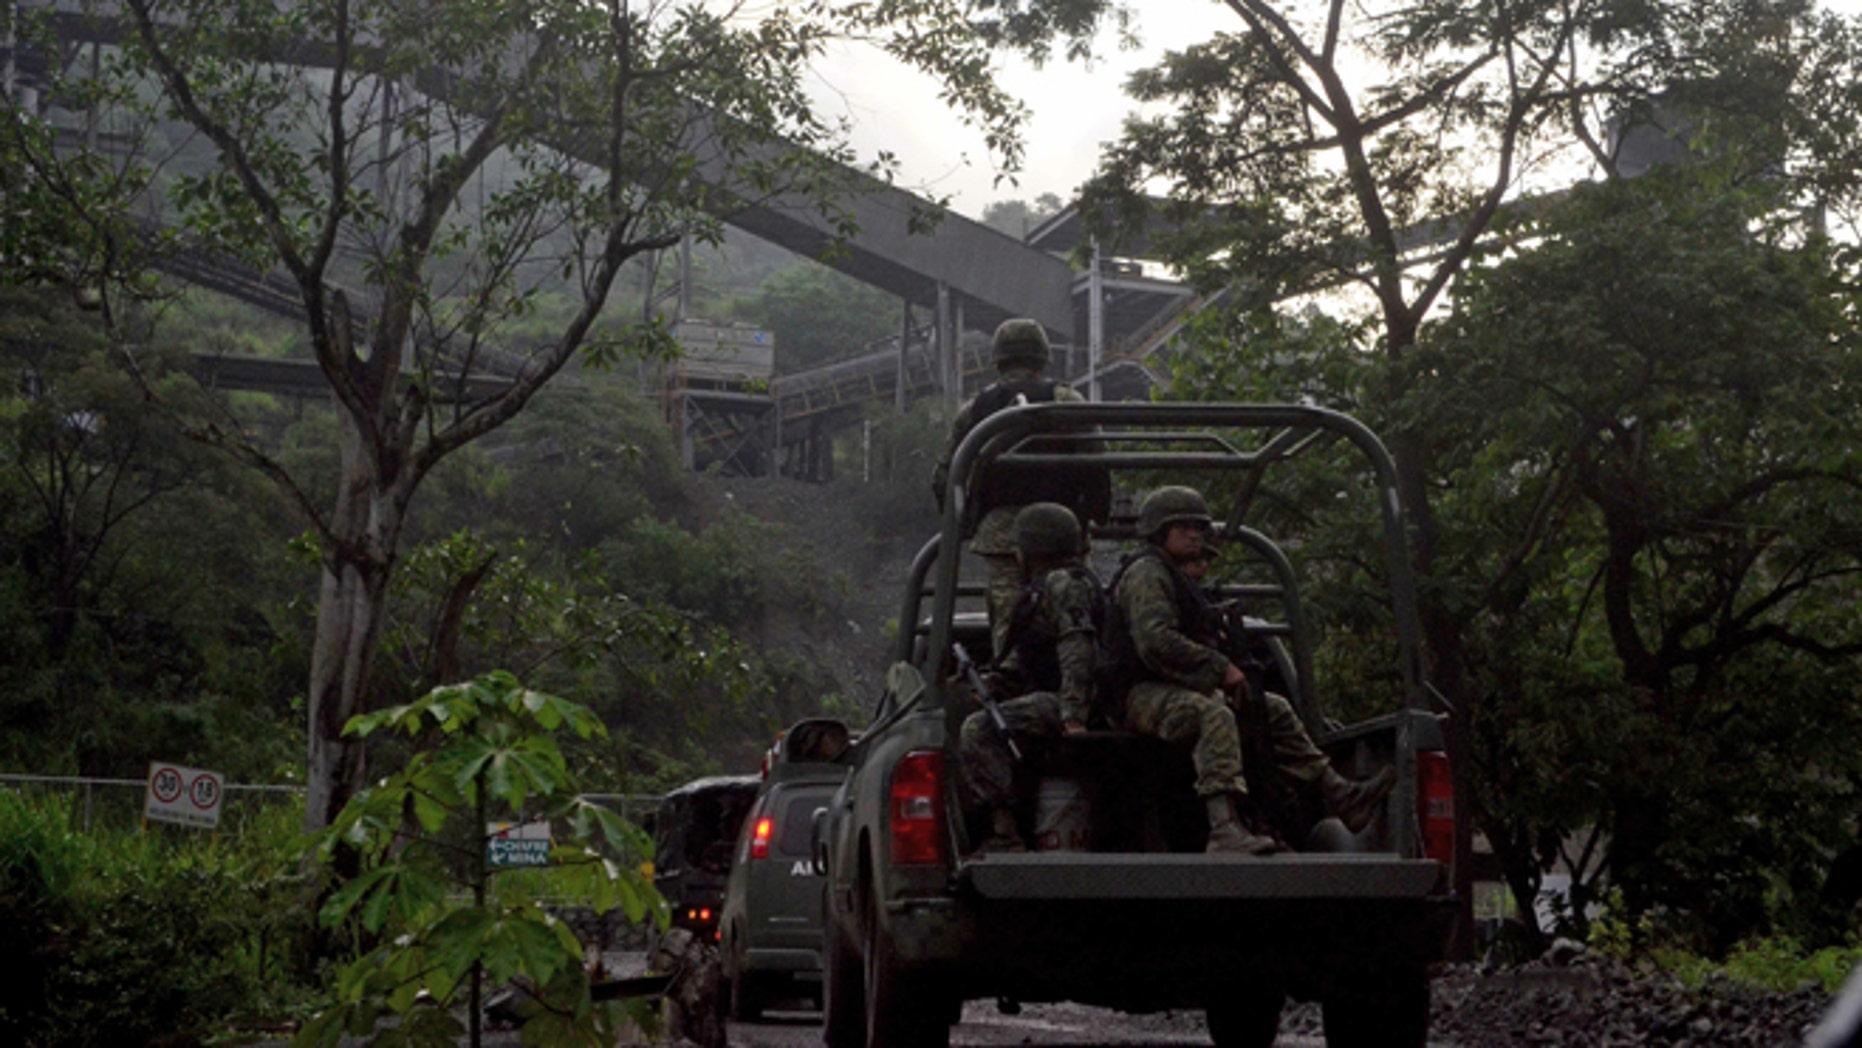 In this Aug. 14, 2013 photo, Mexican army soldiers enter the iron ore mine in the town of Aquila, Mexico. A resident of Aquila, said that since 2012, the Knights Templar cartel demanded residents hand over part of the royalty payments from the local iron ore mine operated by Ternium, a Luxembourg-based consortium. Mexican drug cartels long ago moved into oil theft, pirated goods, extortion and kidnapping, but it still came as a shock this month when federal officials revealed the gangs have broadened the scope and sophistication of their economic empires by entering the country's lucrative mining industry, exporting iron ore to Chinese and other foreign mills. (AP Photo/Agencia Esquema)